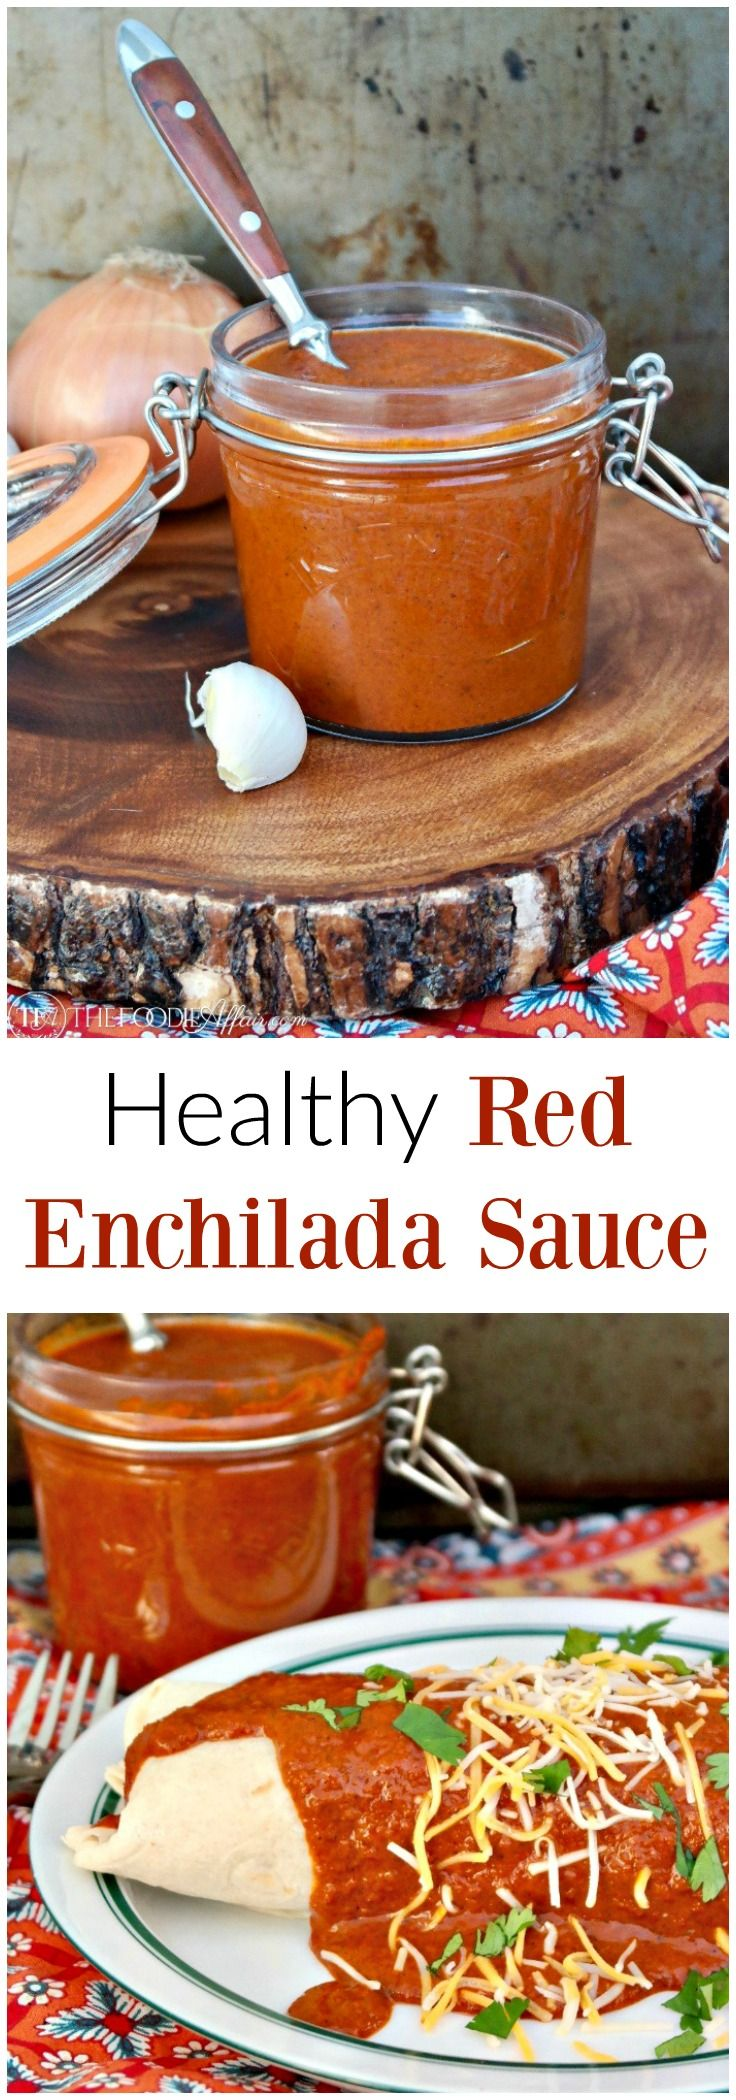 Healthy Red Enchilada Sauce is the base for many Latin dishes. Simple to make with added vegetables and spices for a clean tasting sauce!